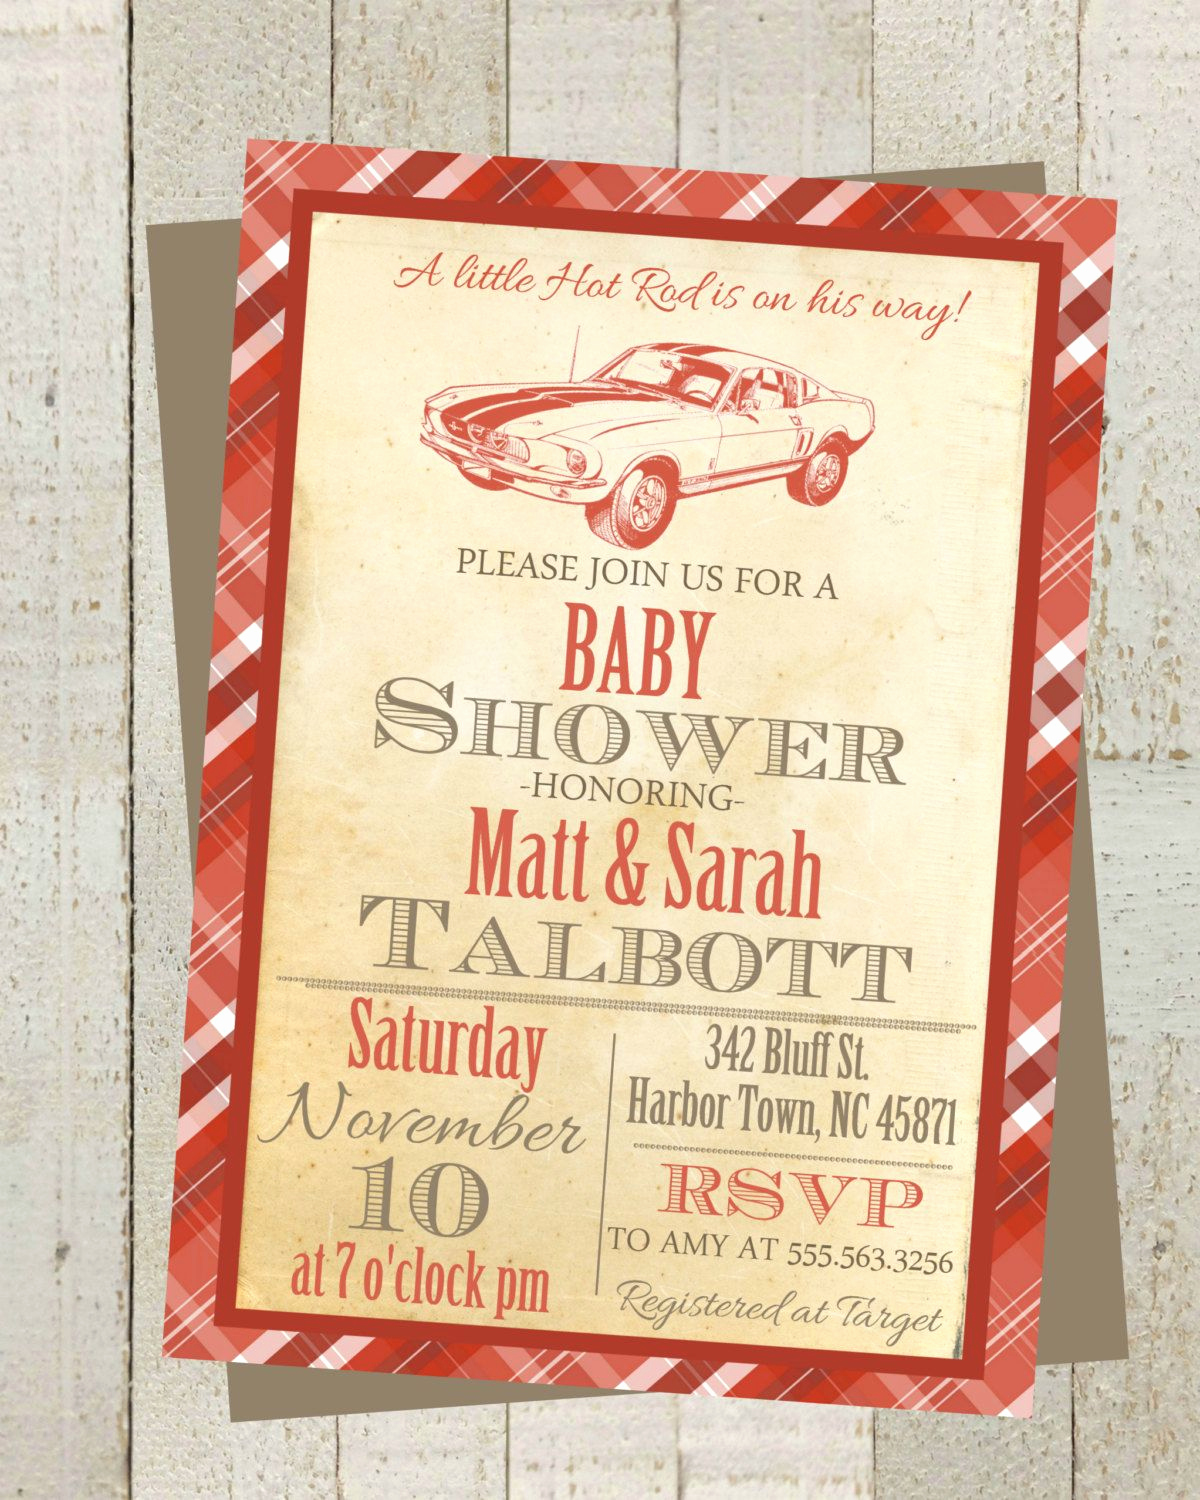 Vintage Baby Shower Invitation Lovely Little Hot Rod Vintage Baby Shower Invite Invitation with